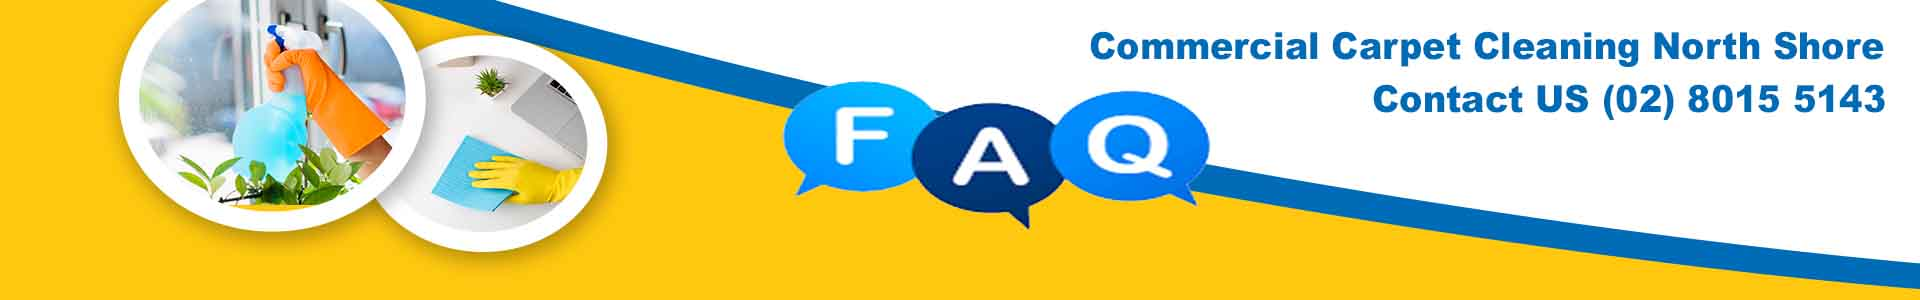 FAQ Carpet Tile Cleaning North Shore